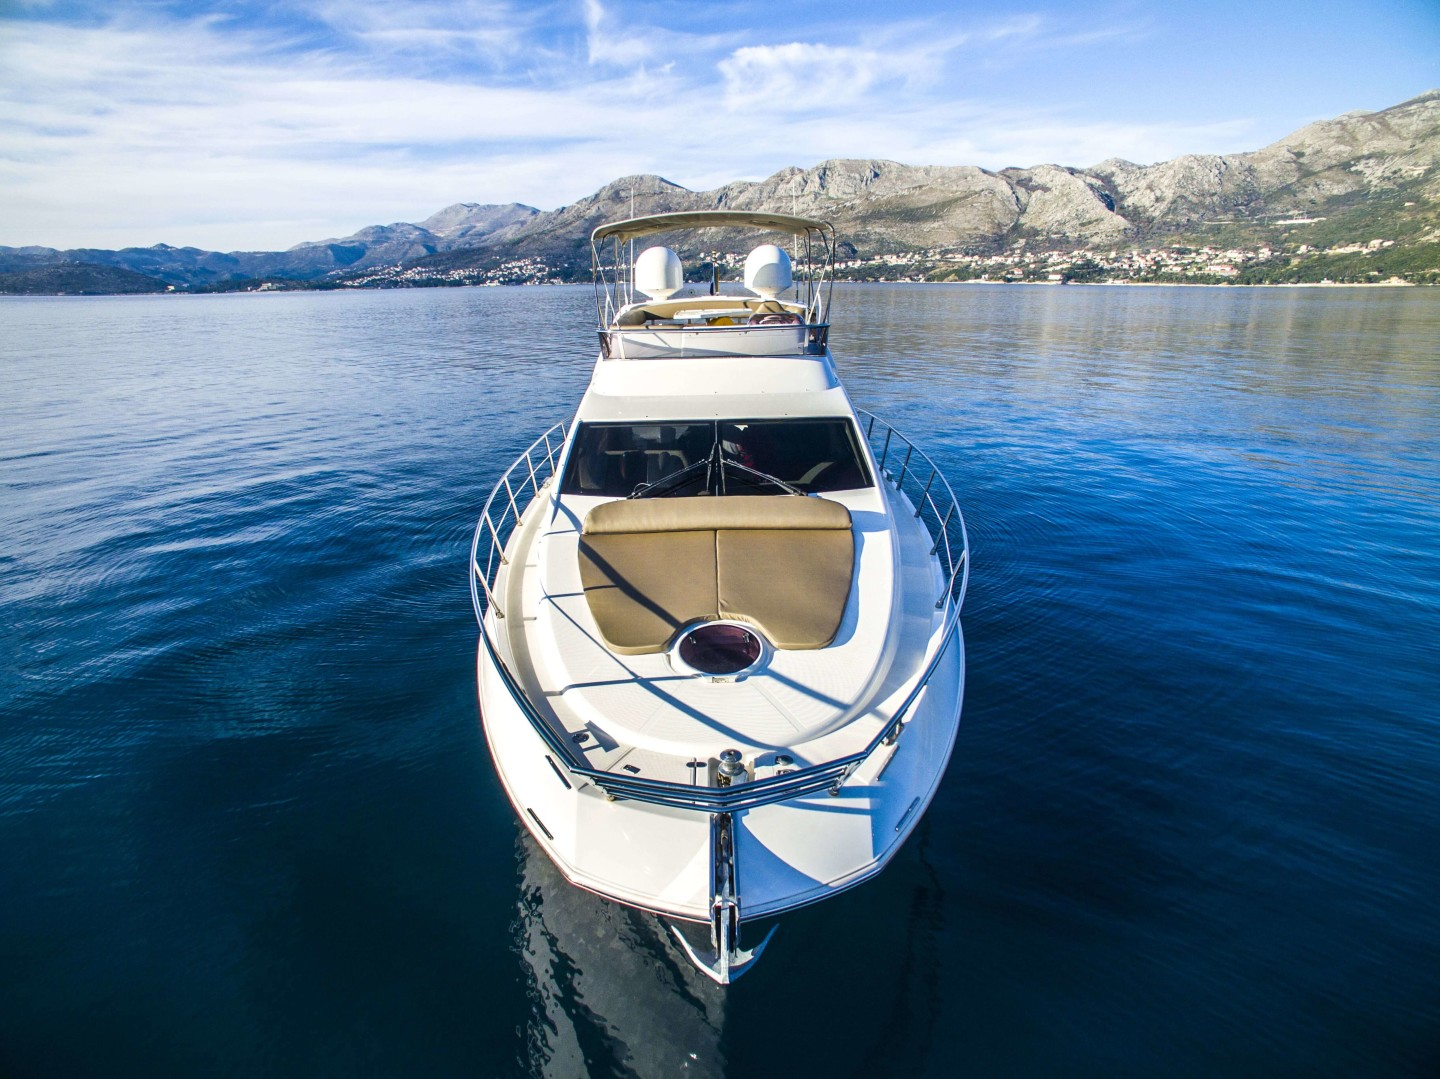 azimut 43 dubrovnik 07 croatia full of life paddle surfing snorkeling